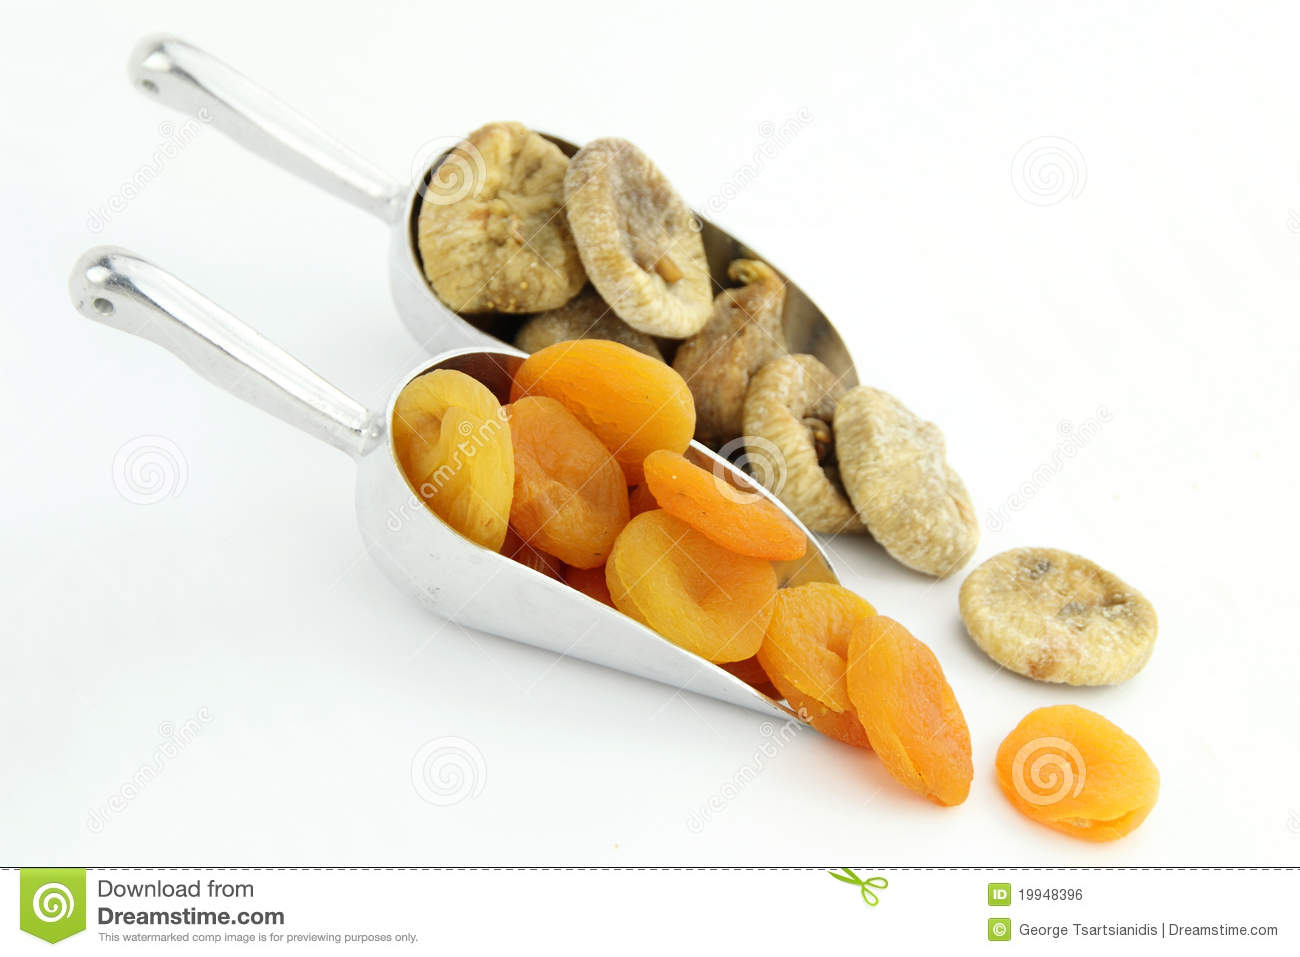 Dried Apricots And Figs Royalty Free Stock Image - Image: 19948396